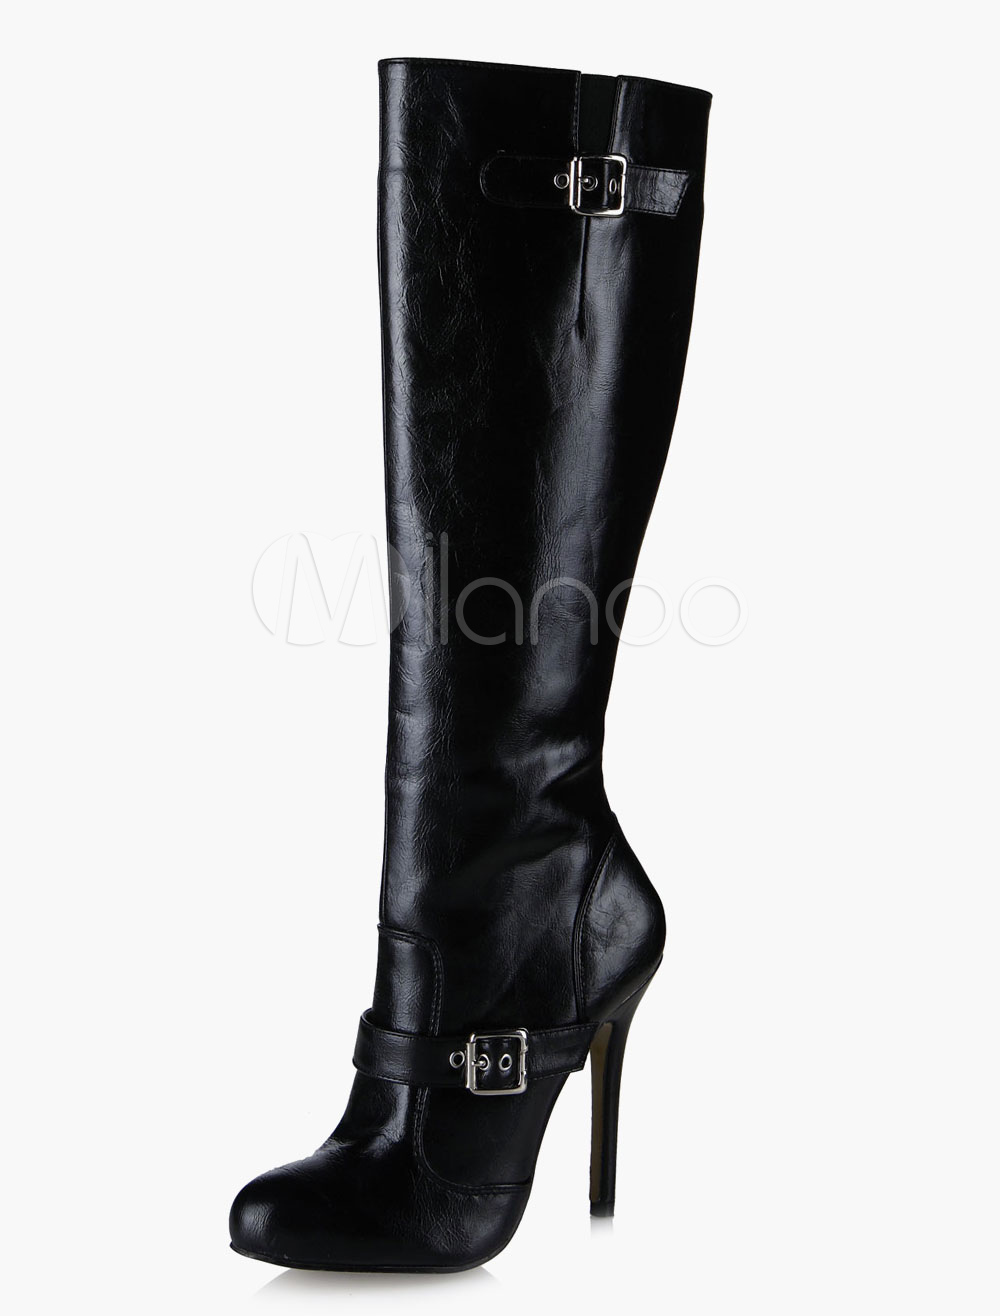 Black Buckled Hight Heel Zipper Mid Calf Boots